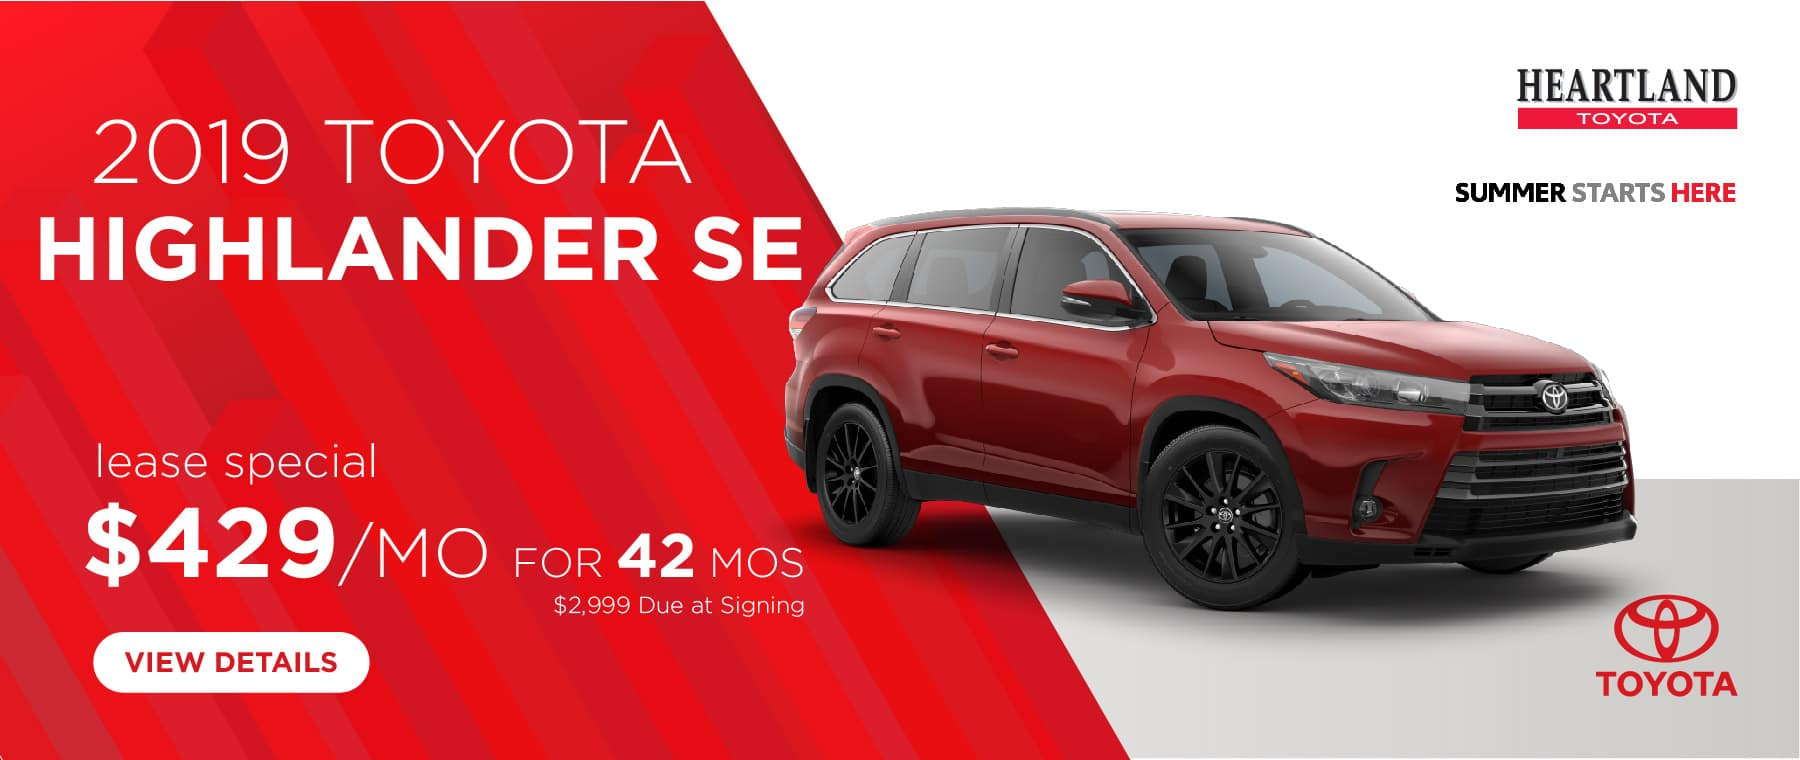 2019 Toyota Highlander SE $429/mo. For 42 months* *Offer valid on 2019 Toyota Highlander SE (6952). $429 per mo. for 42 months. Lease with $2,999 due at signing; includes a $695 acquisition fee. Valid on VIN: 5TDJZRFH9KS971218, 5TDJZRFH8KS975812, 5TDJZRFH8KS980430. MSRP $43,895. Deal #347932. Subject to credit approval. No Security deposit required. Excludes taxes, title, and fees. 42 monthly payments required. Not all lessees will qualify for lowest payment through participating lender. Residency restrictions apply. Lessee responsible for mileage over 10,000 miles per year at $0.25/mile per year. Option to purchase at lease end. A negotiable dealer documentary service fee of up to $150 may be added to the sale price or capitalized cost. Offer expires 5/30/2019.